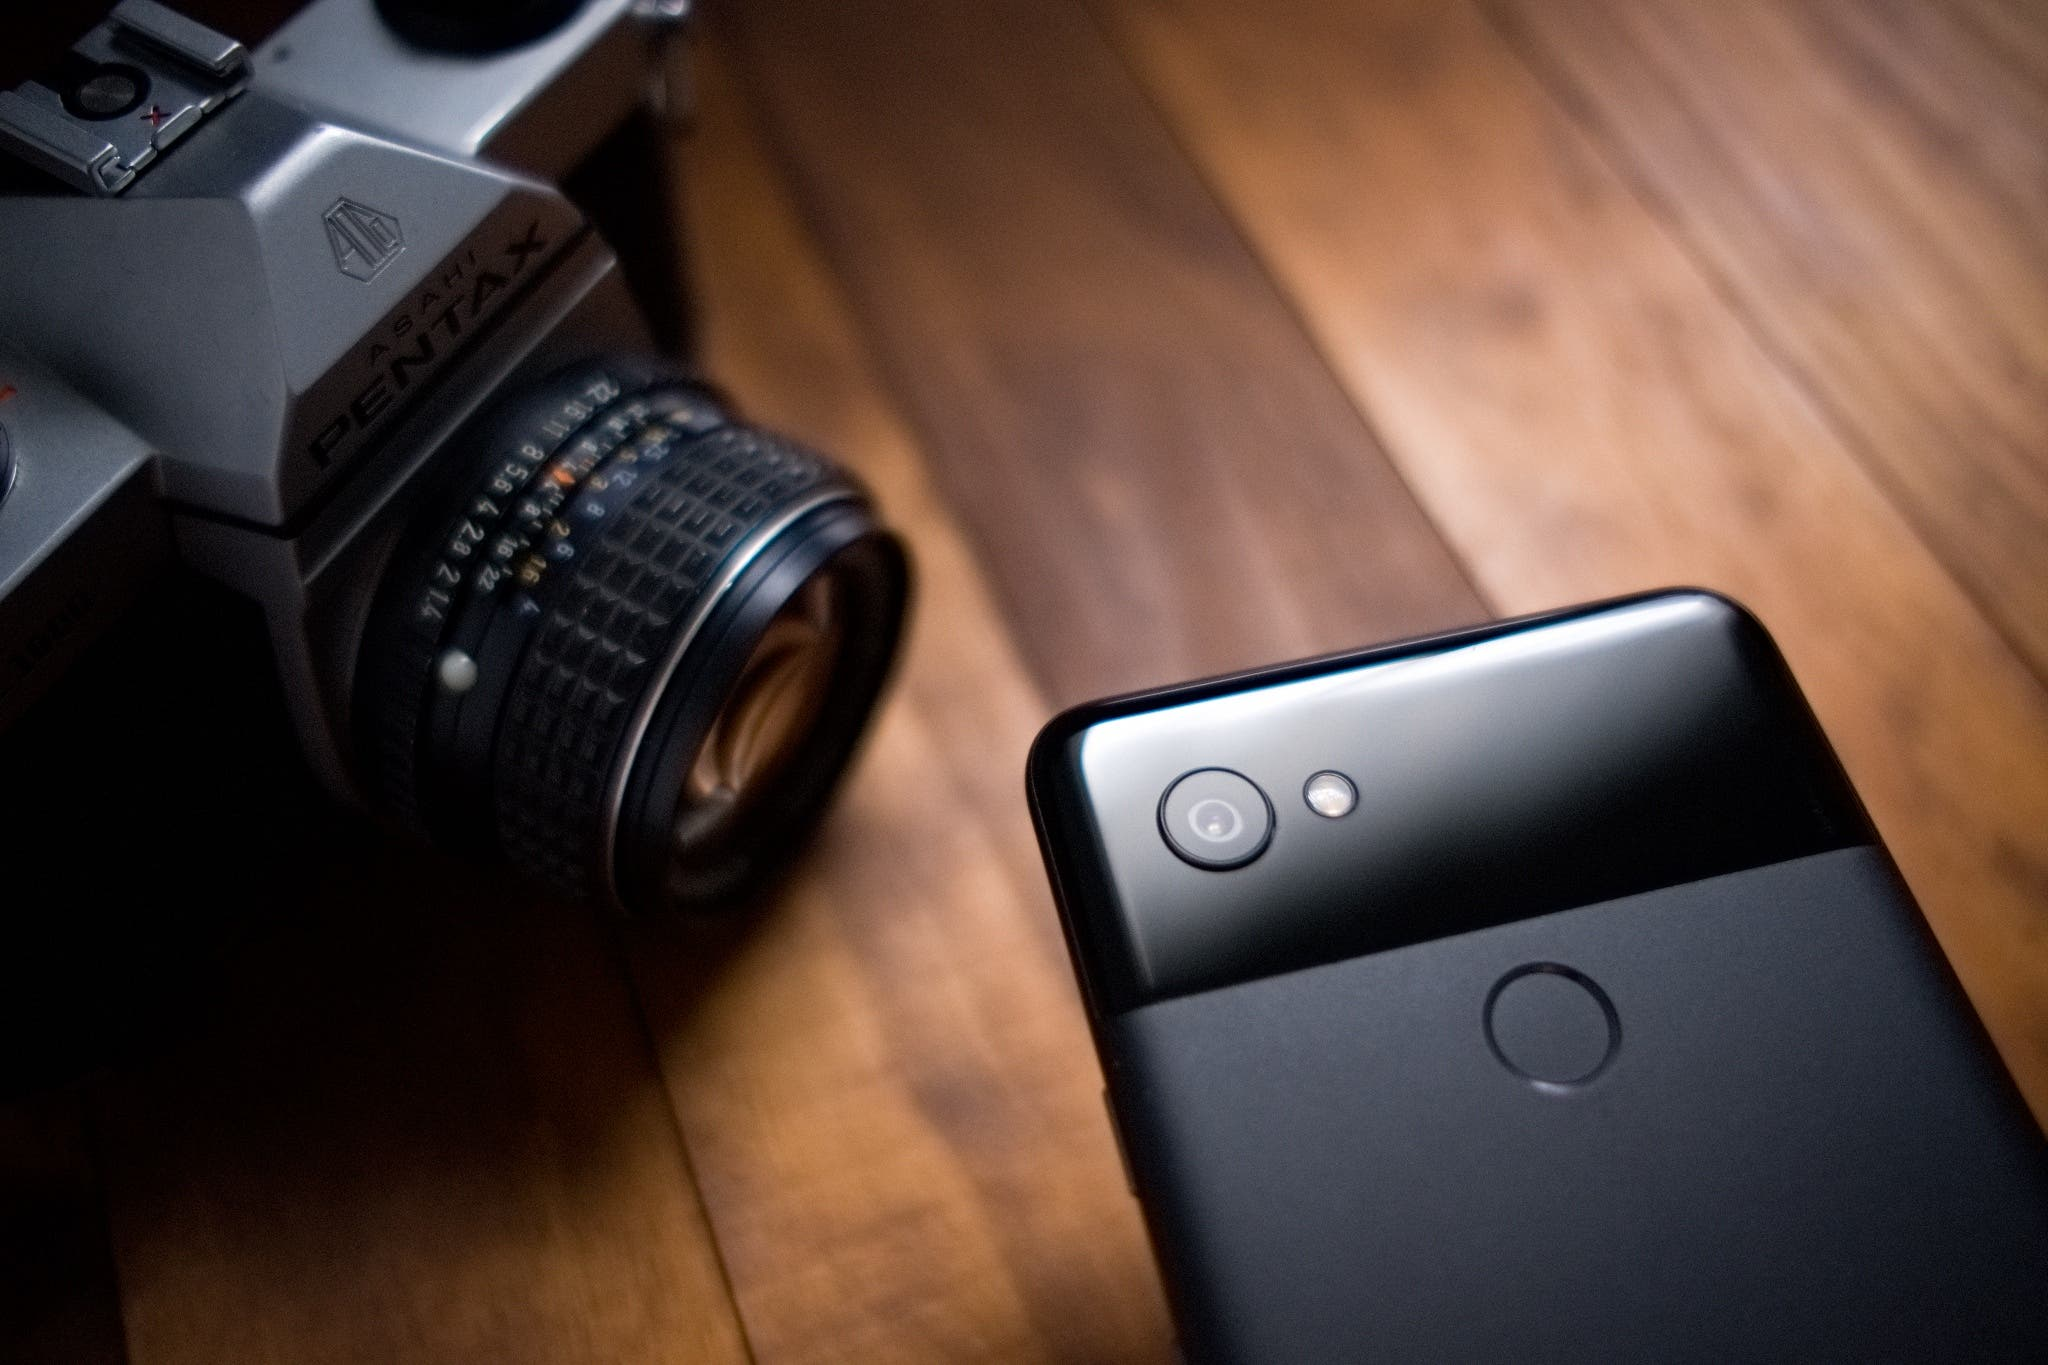 Google's Best In Class Smartphone Camera is About to Get Better